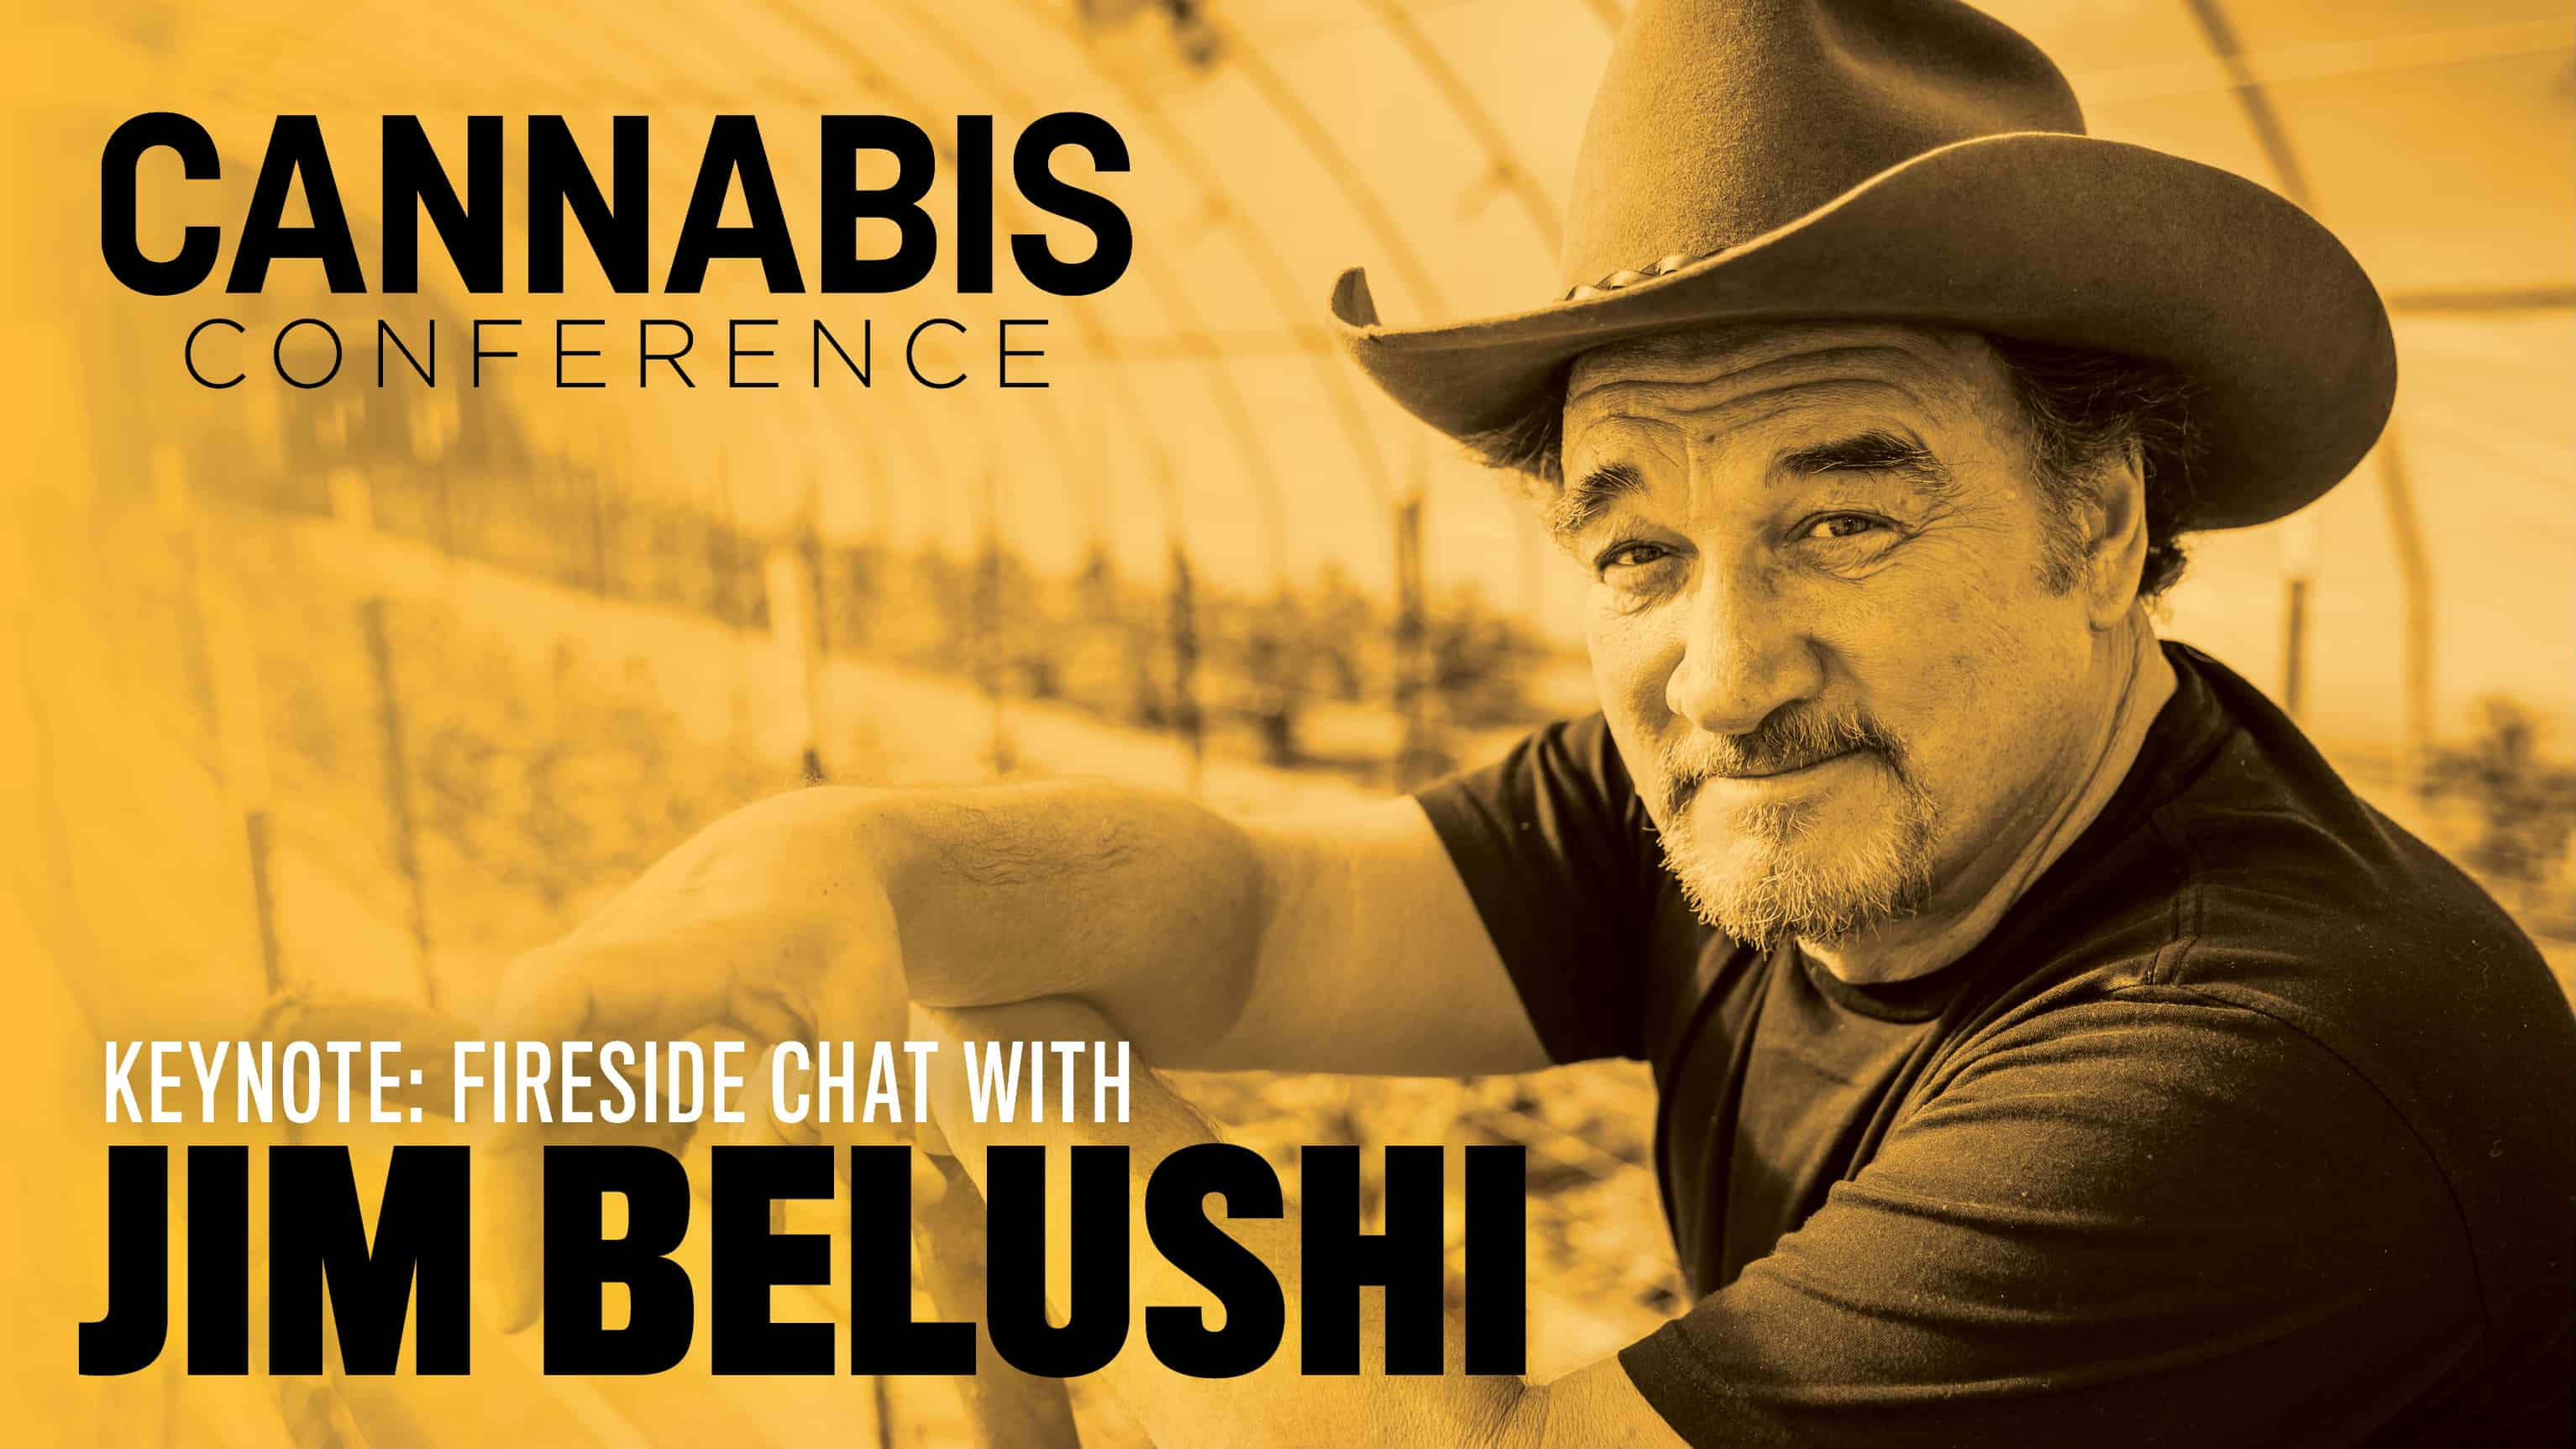 jim belushi cannabis conference